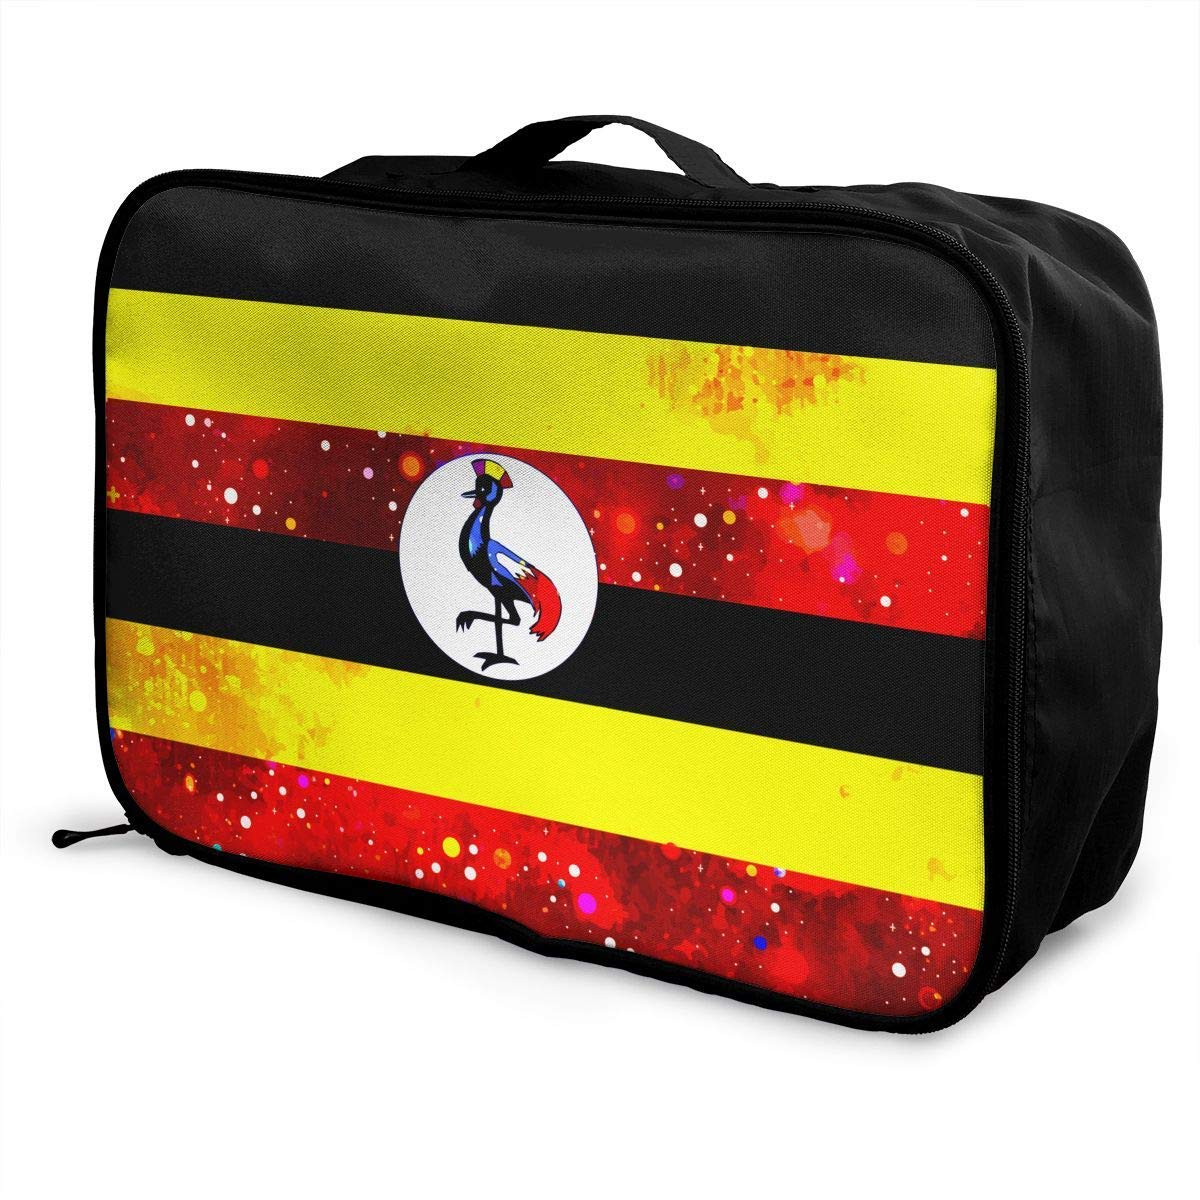 Portable Luggage Duffel Bag Uganda Starry Flag Travel Bags Carry-on In Trolley Handle